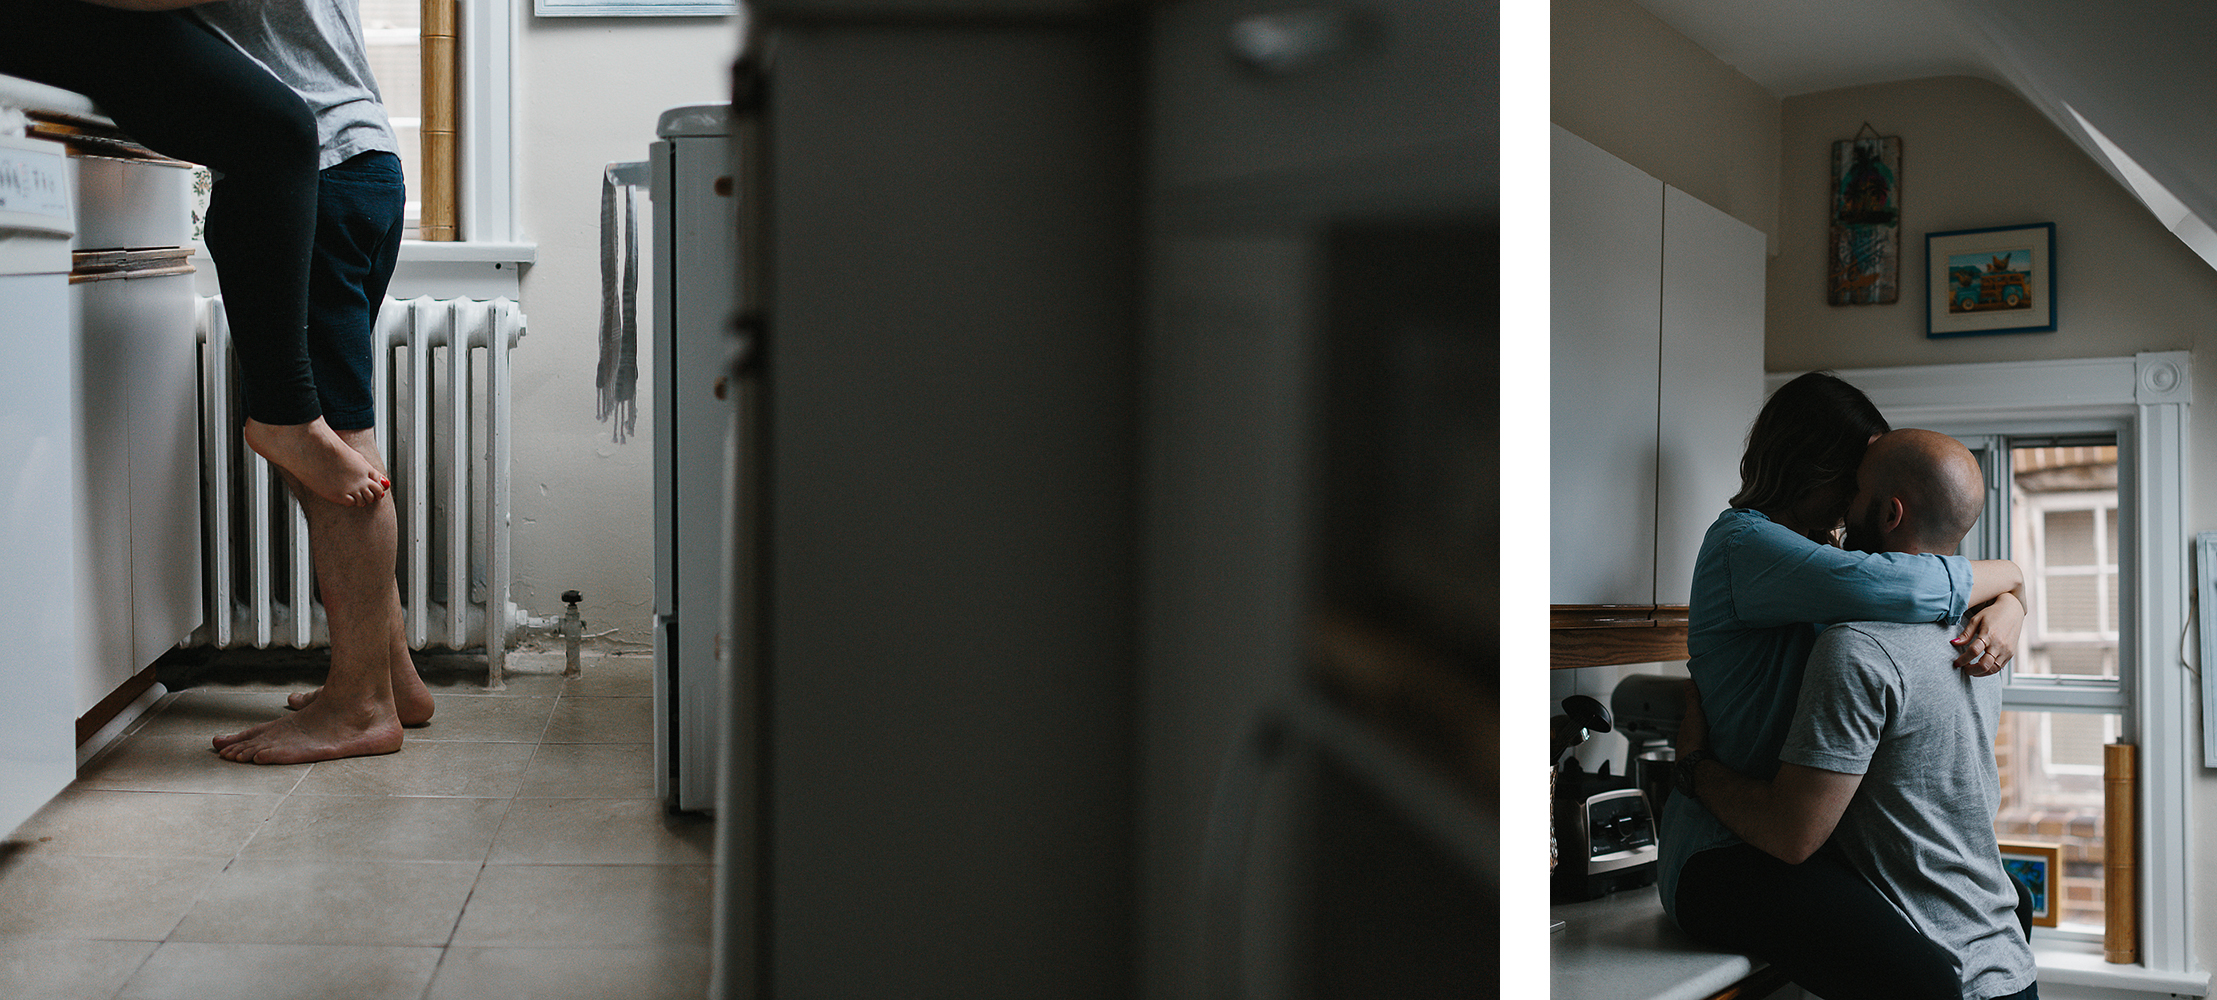 spread-7-downtown-toronto-in-home-engagement-session-toronto-wedding-photographer-ryanne-hollies-photography-documentary-candid-natural-photos-engaged-in-toronto-couple-in-the-kitchen-apartment-hot-and-steamy.jpg